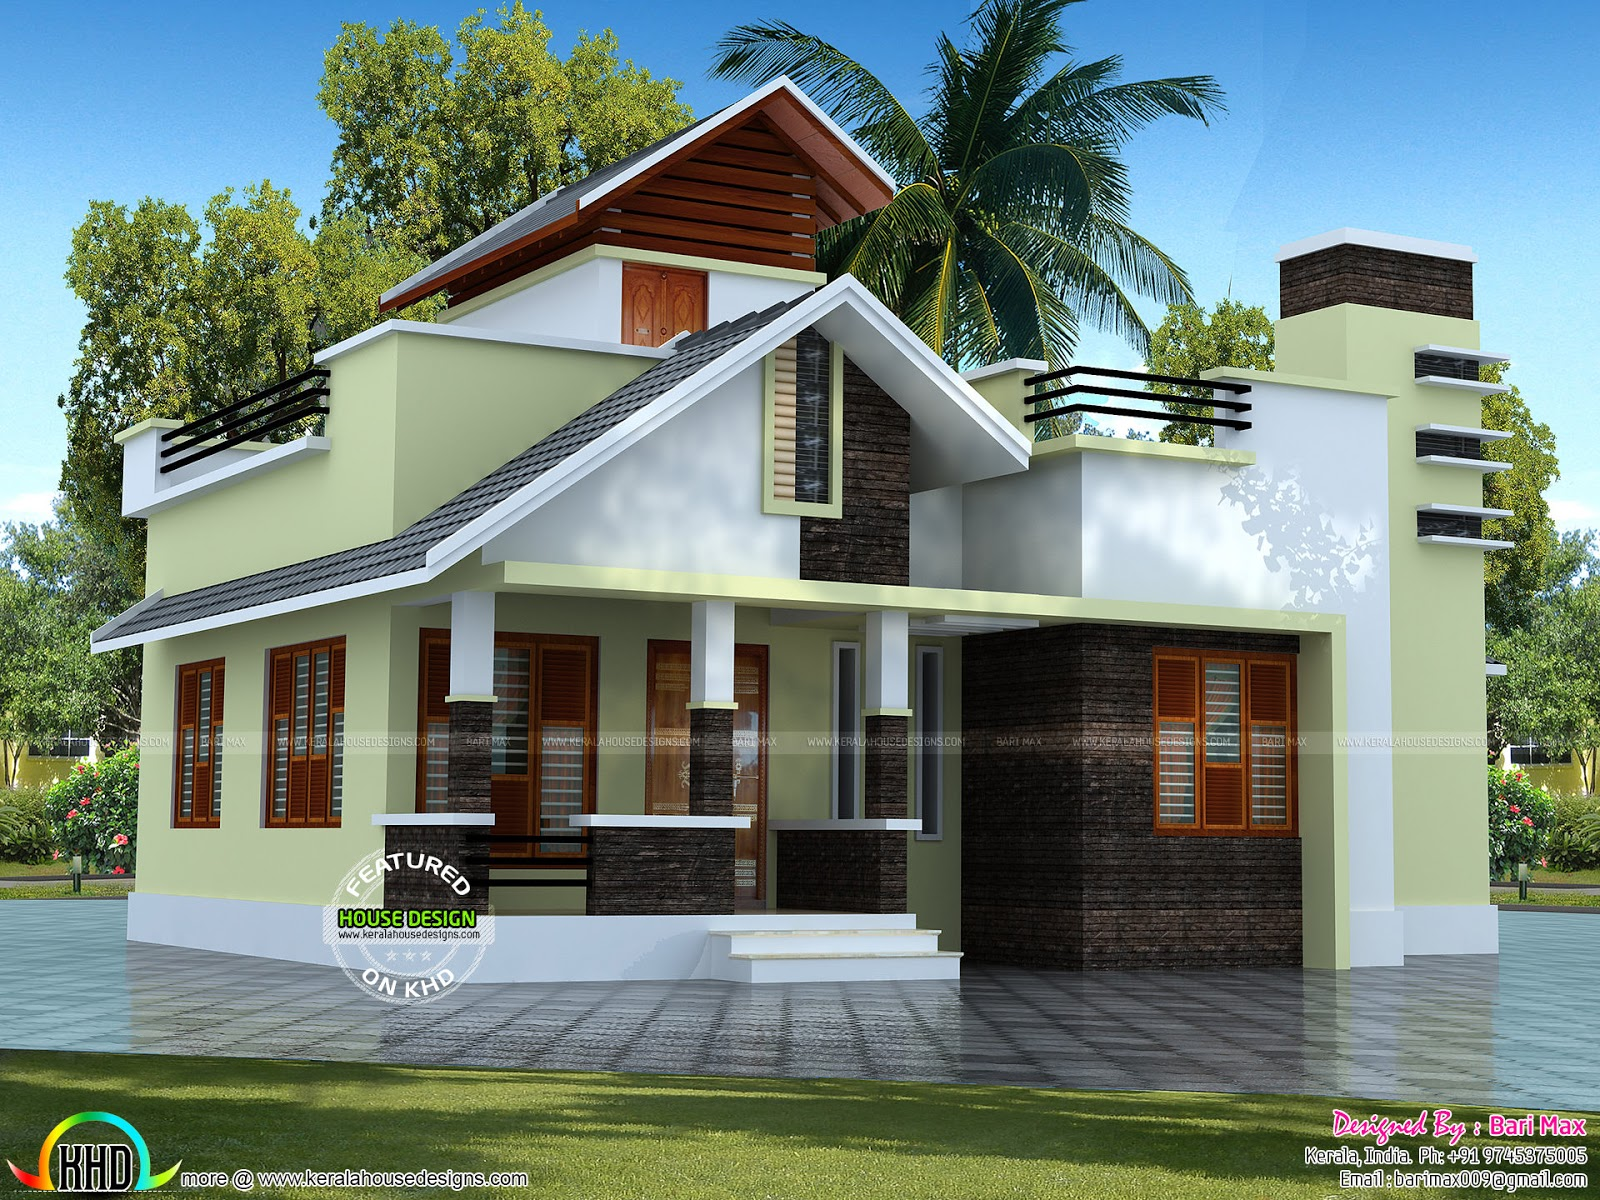 Low cost single floor home 1050 sq ft kerala home design for Kerala home designs low cost